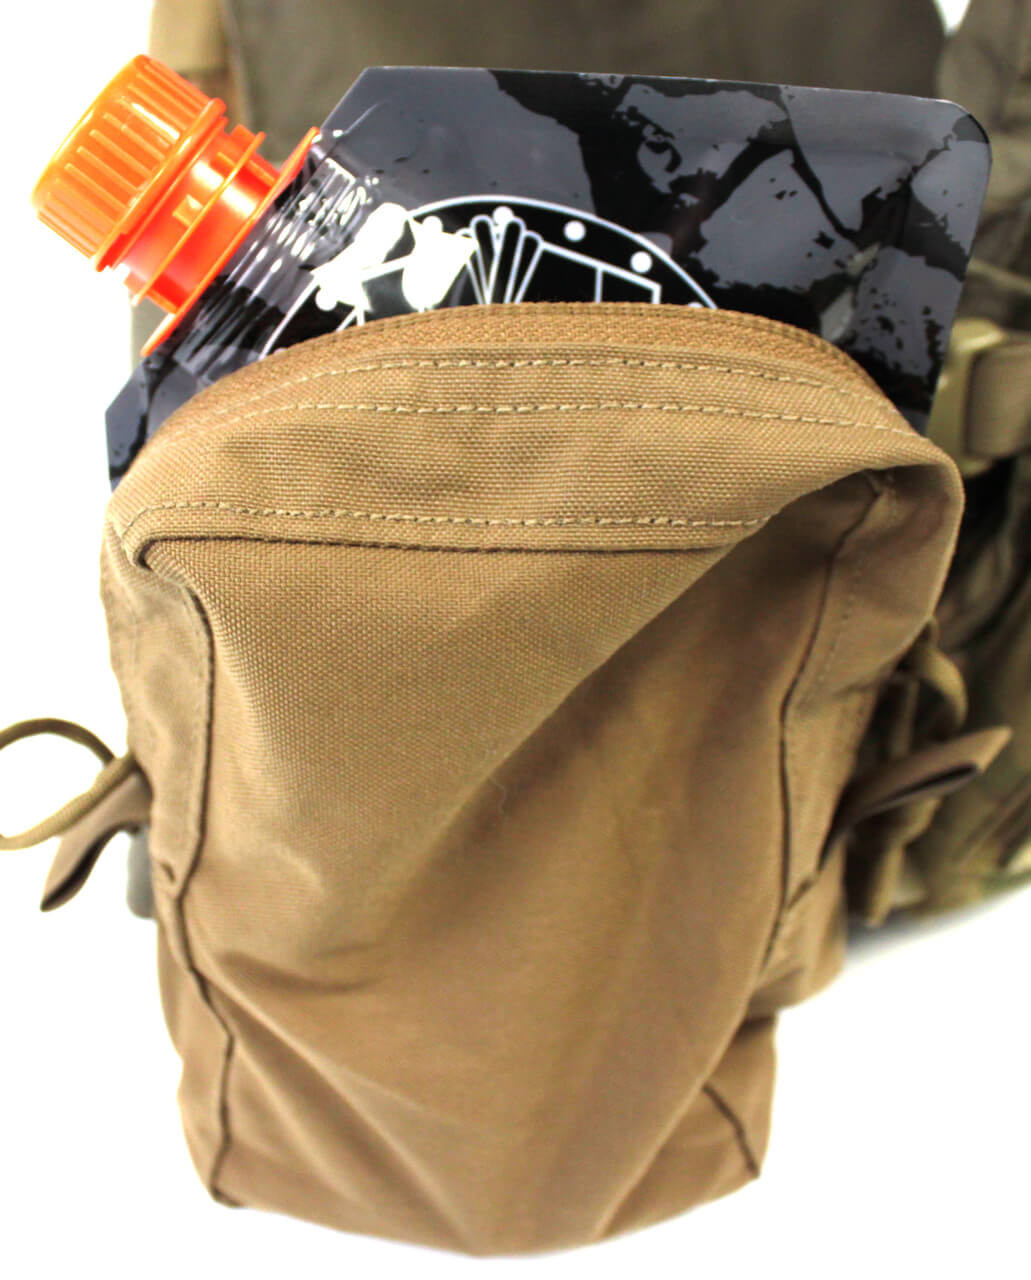 BBWarz - BB Bottle Bag Standing Up in Pouch